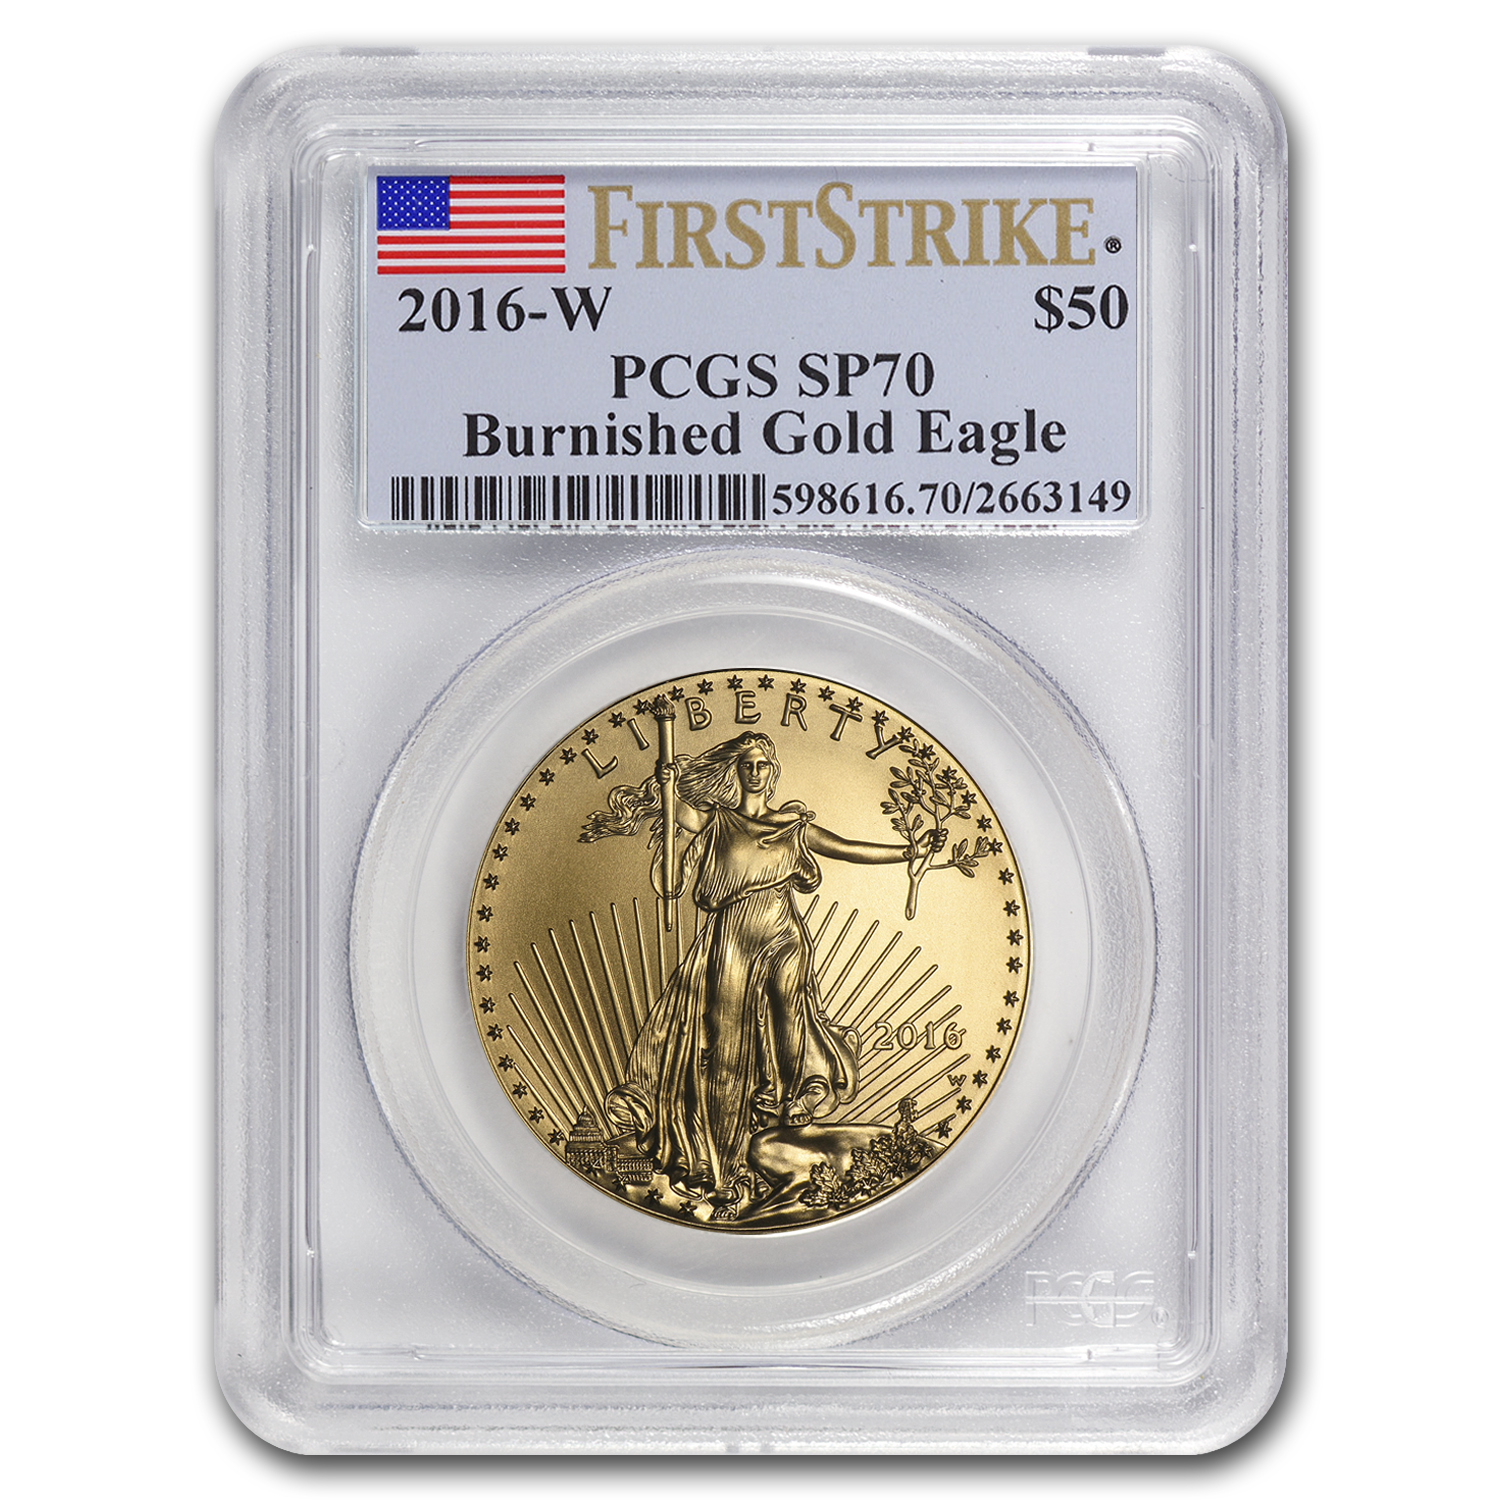 2016-W 1 oz Burnished Gold Eagle SP-70 PCGS (First Strike)